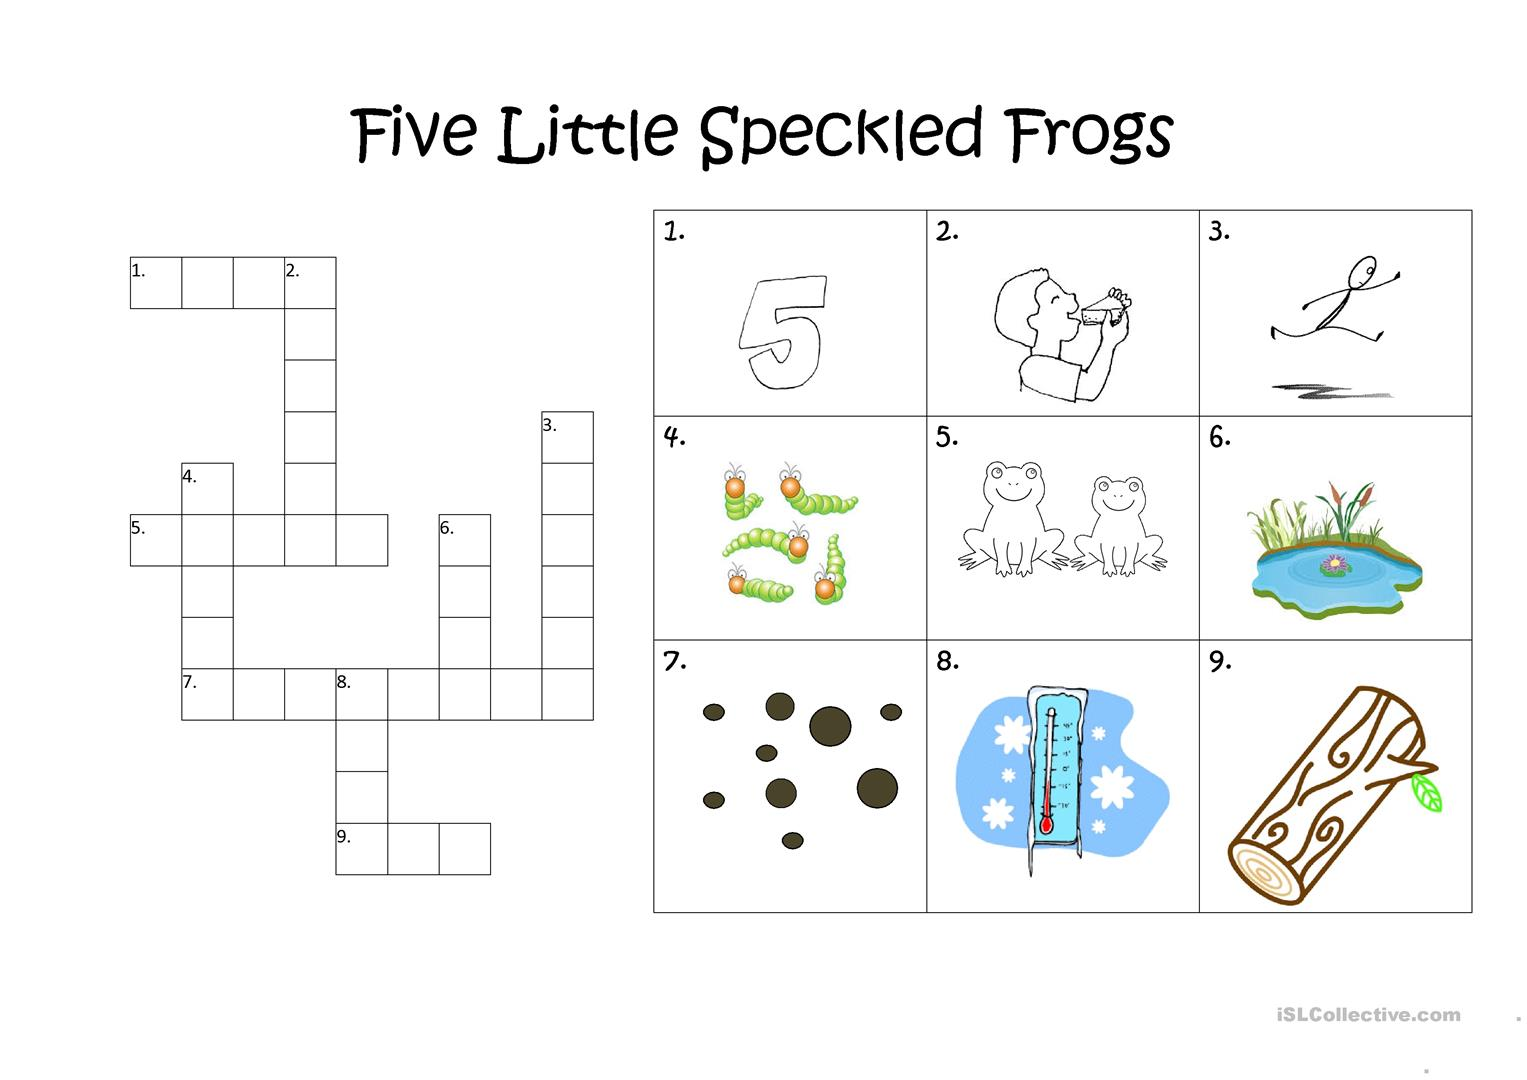 Five Little Speckled Frogs Crossword Worksheet